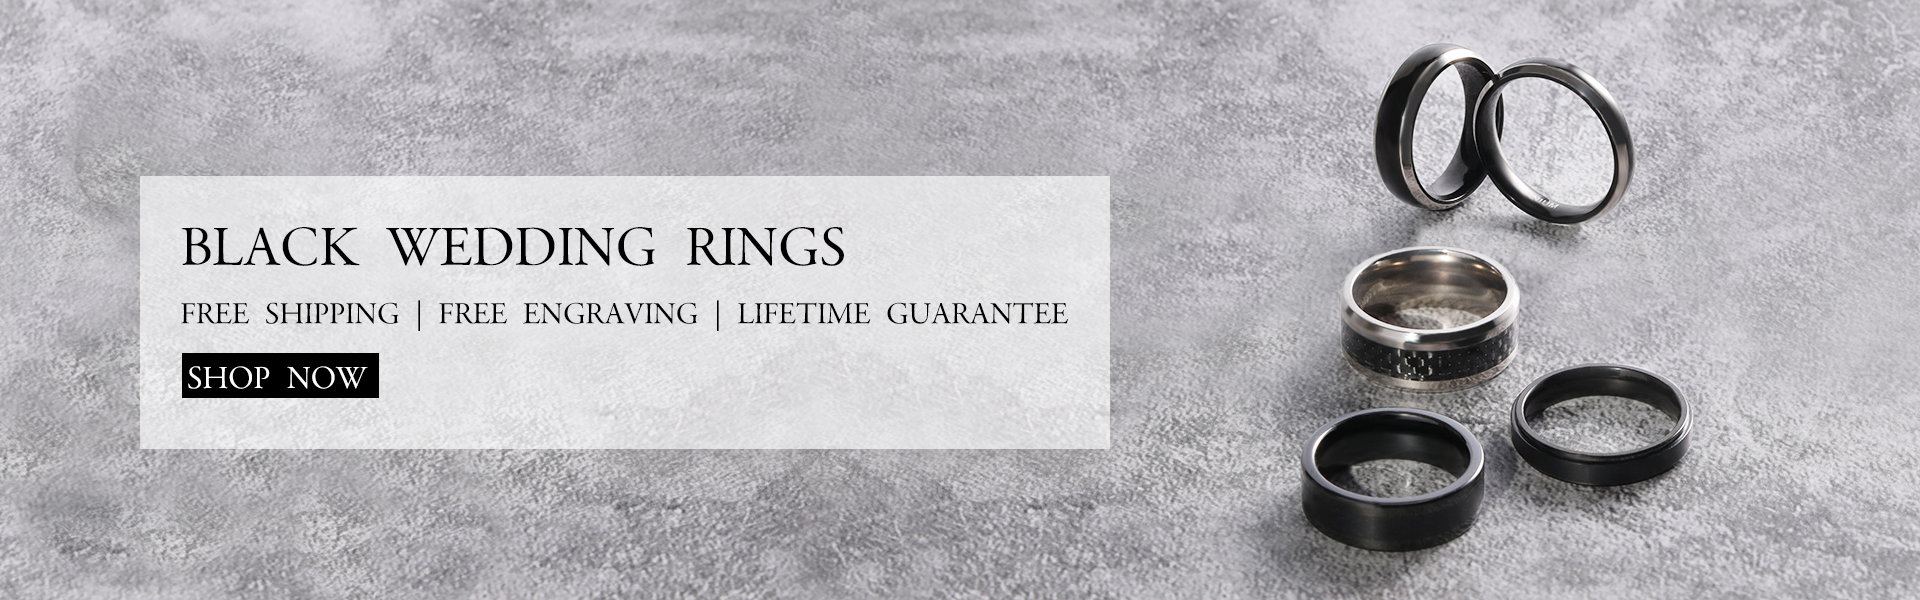 Find your love, find your rings